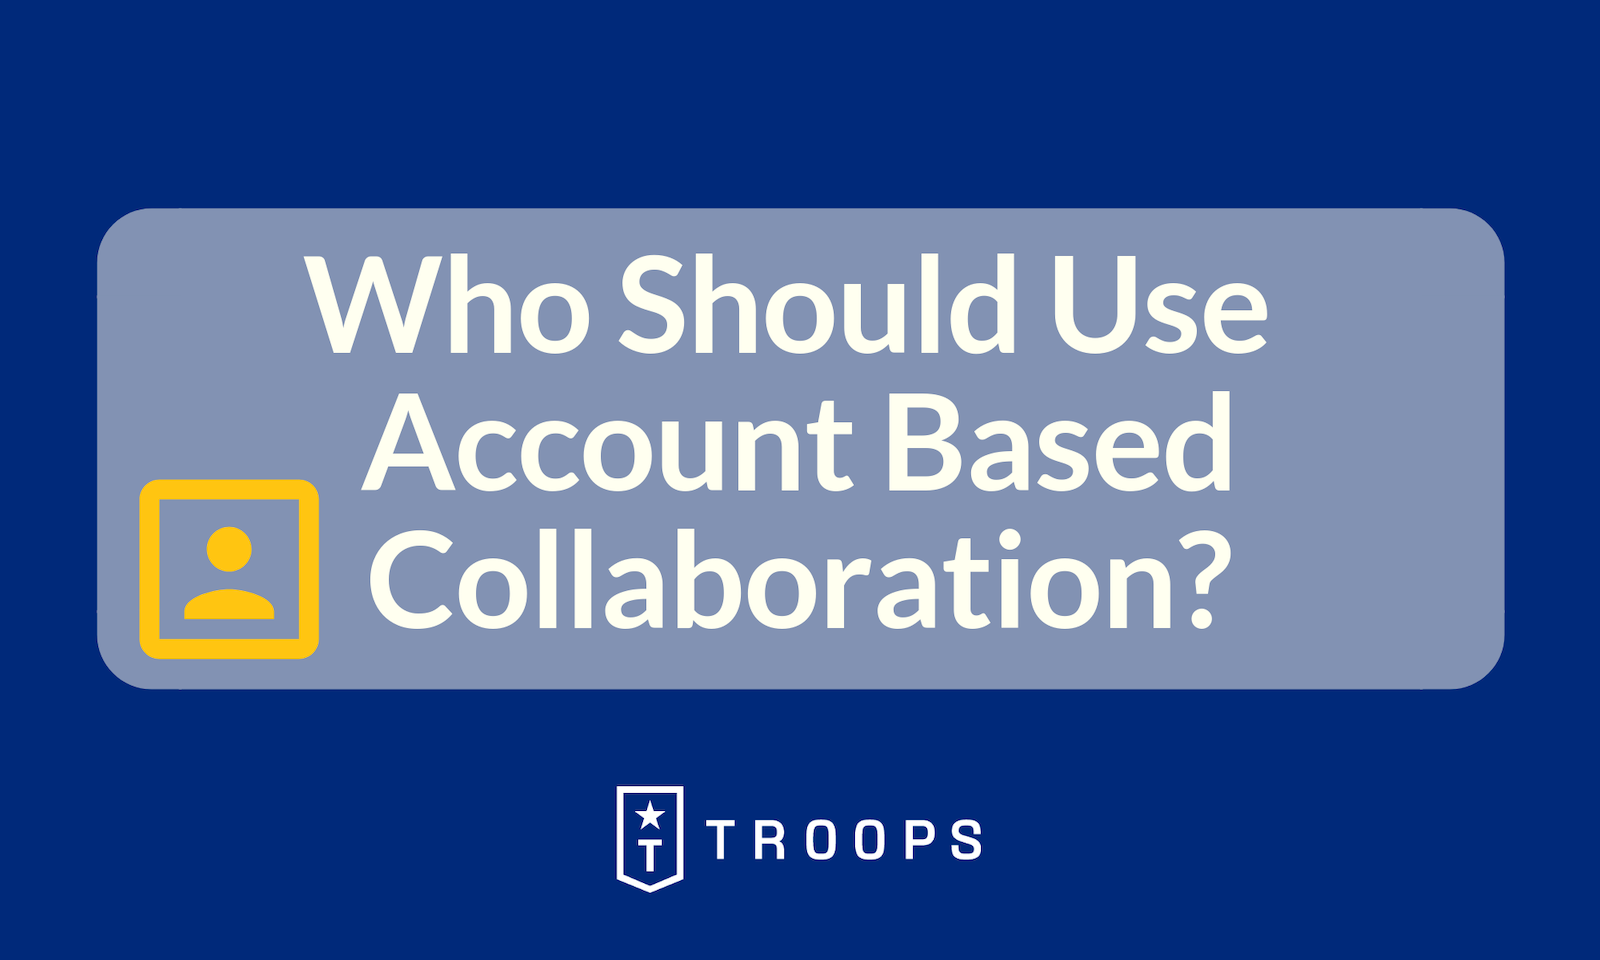 Who Should Use Account Based Collaboration?